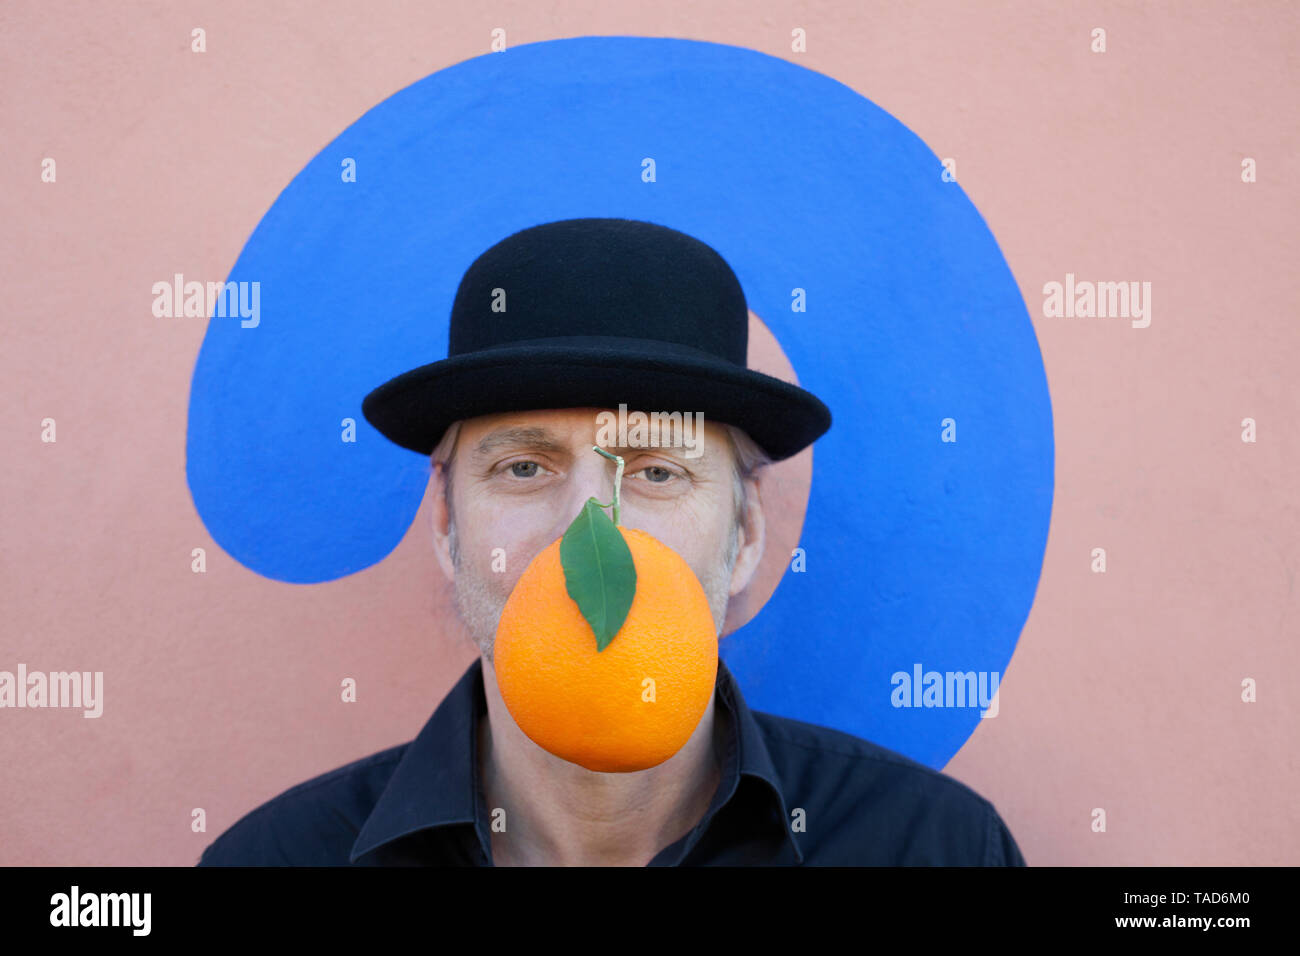 Portrait of man with an orange at a wall with question mark wearing a bowler hat - Stock Image